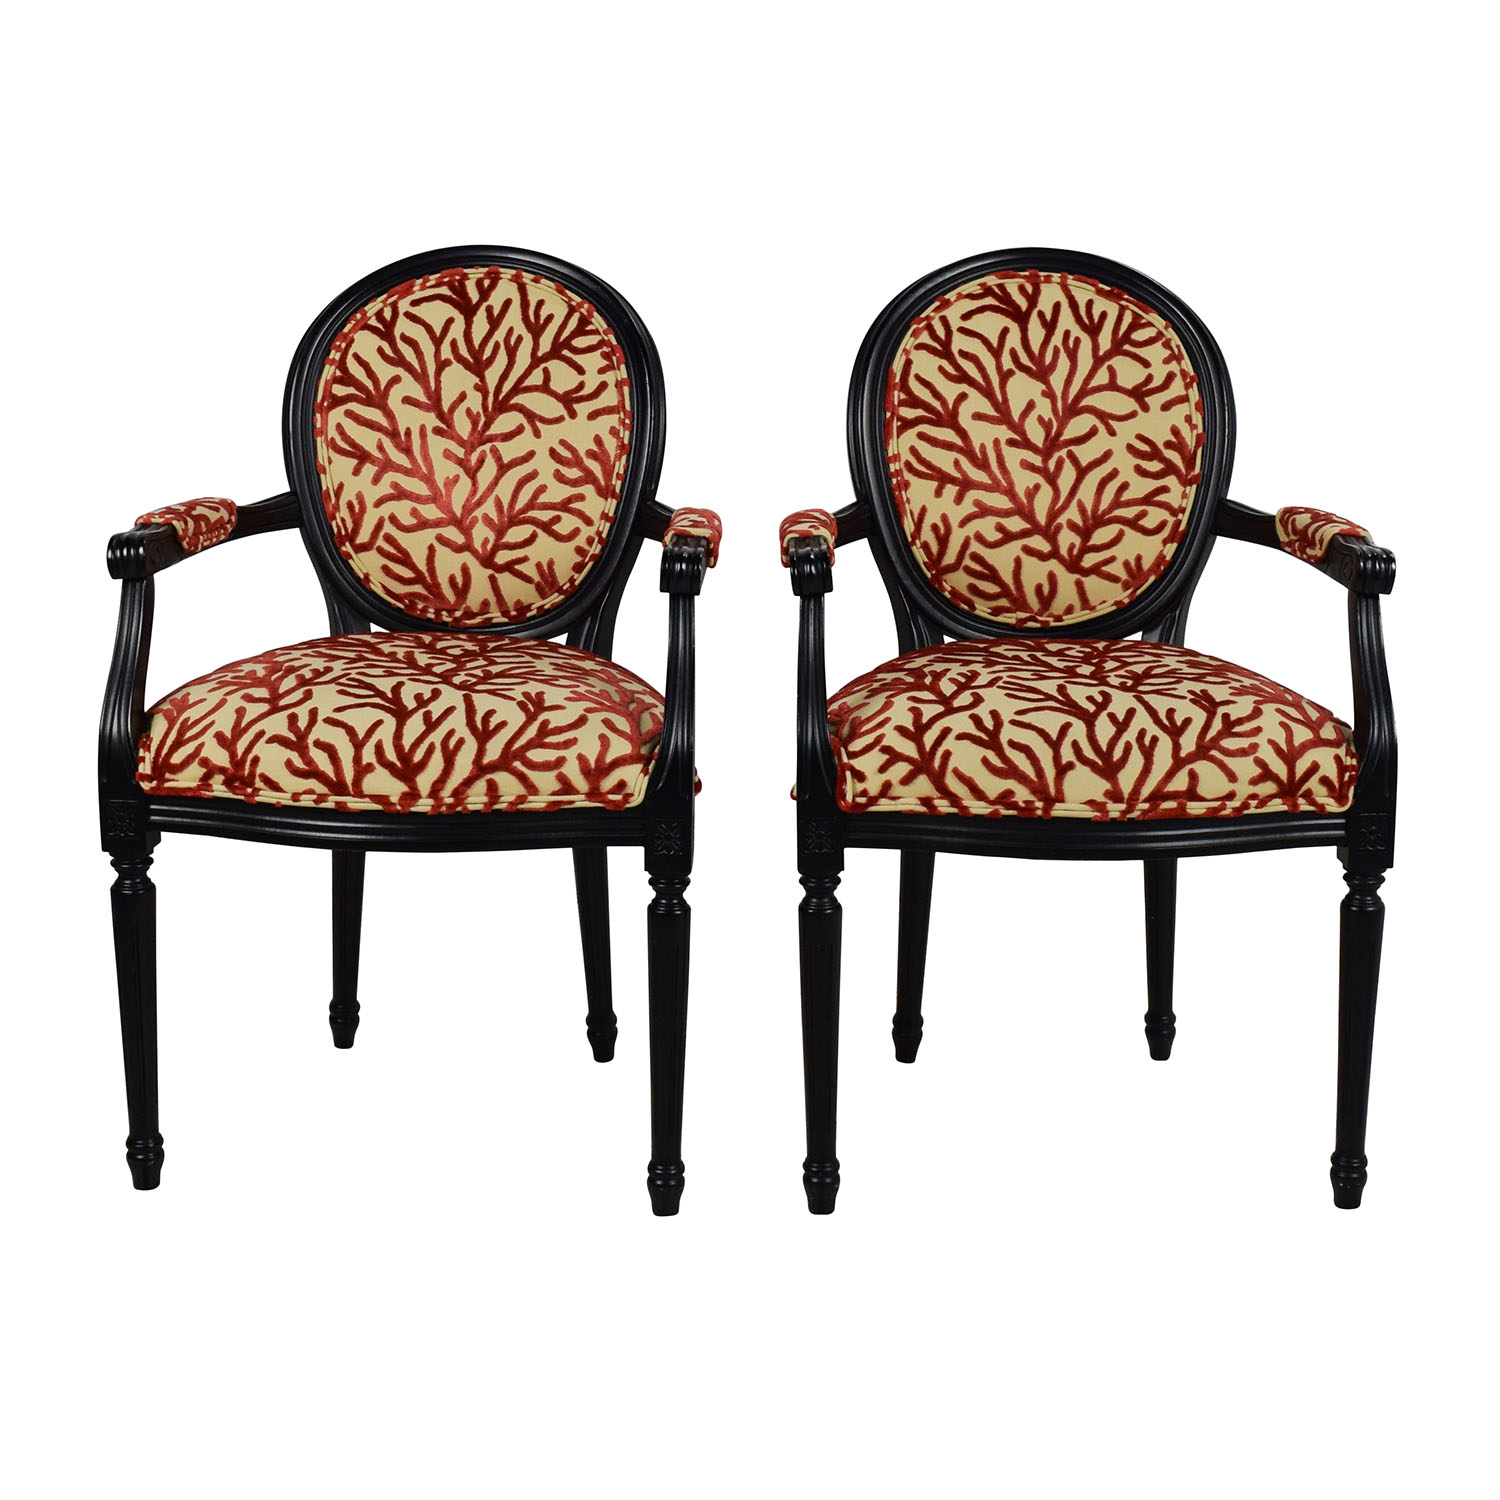 Excellent Ballard Design Off Room U Board Orange Striped Lounge Chair With Designs Chairs